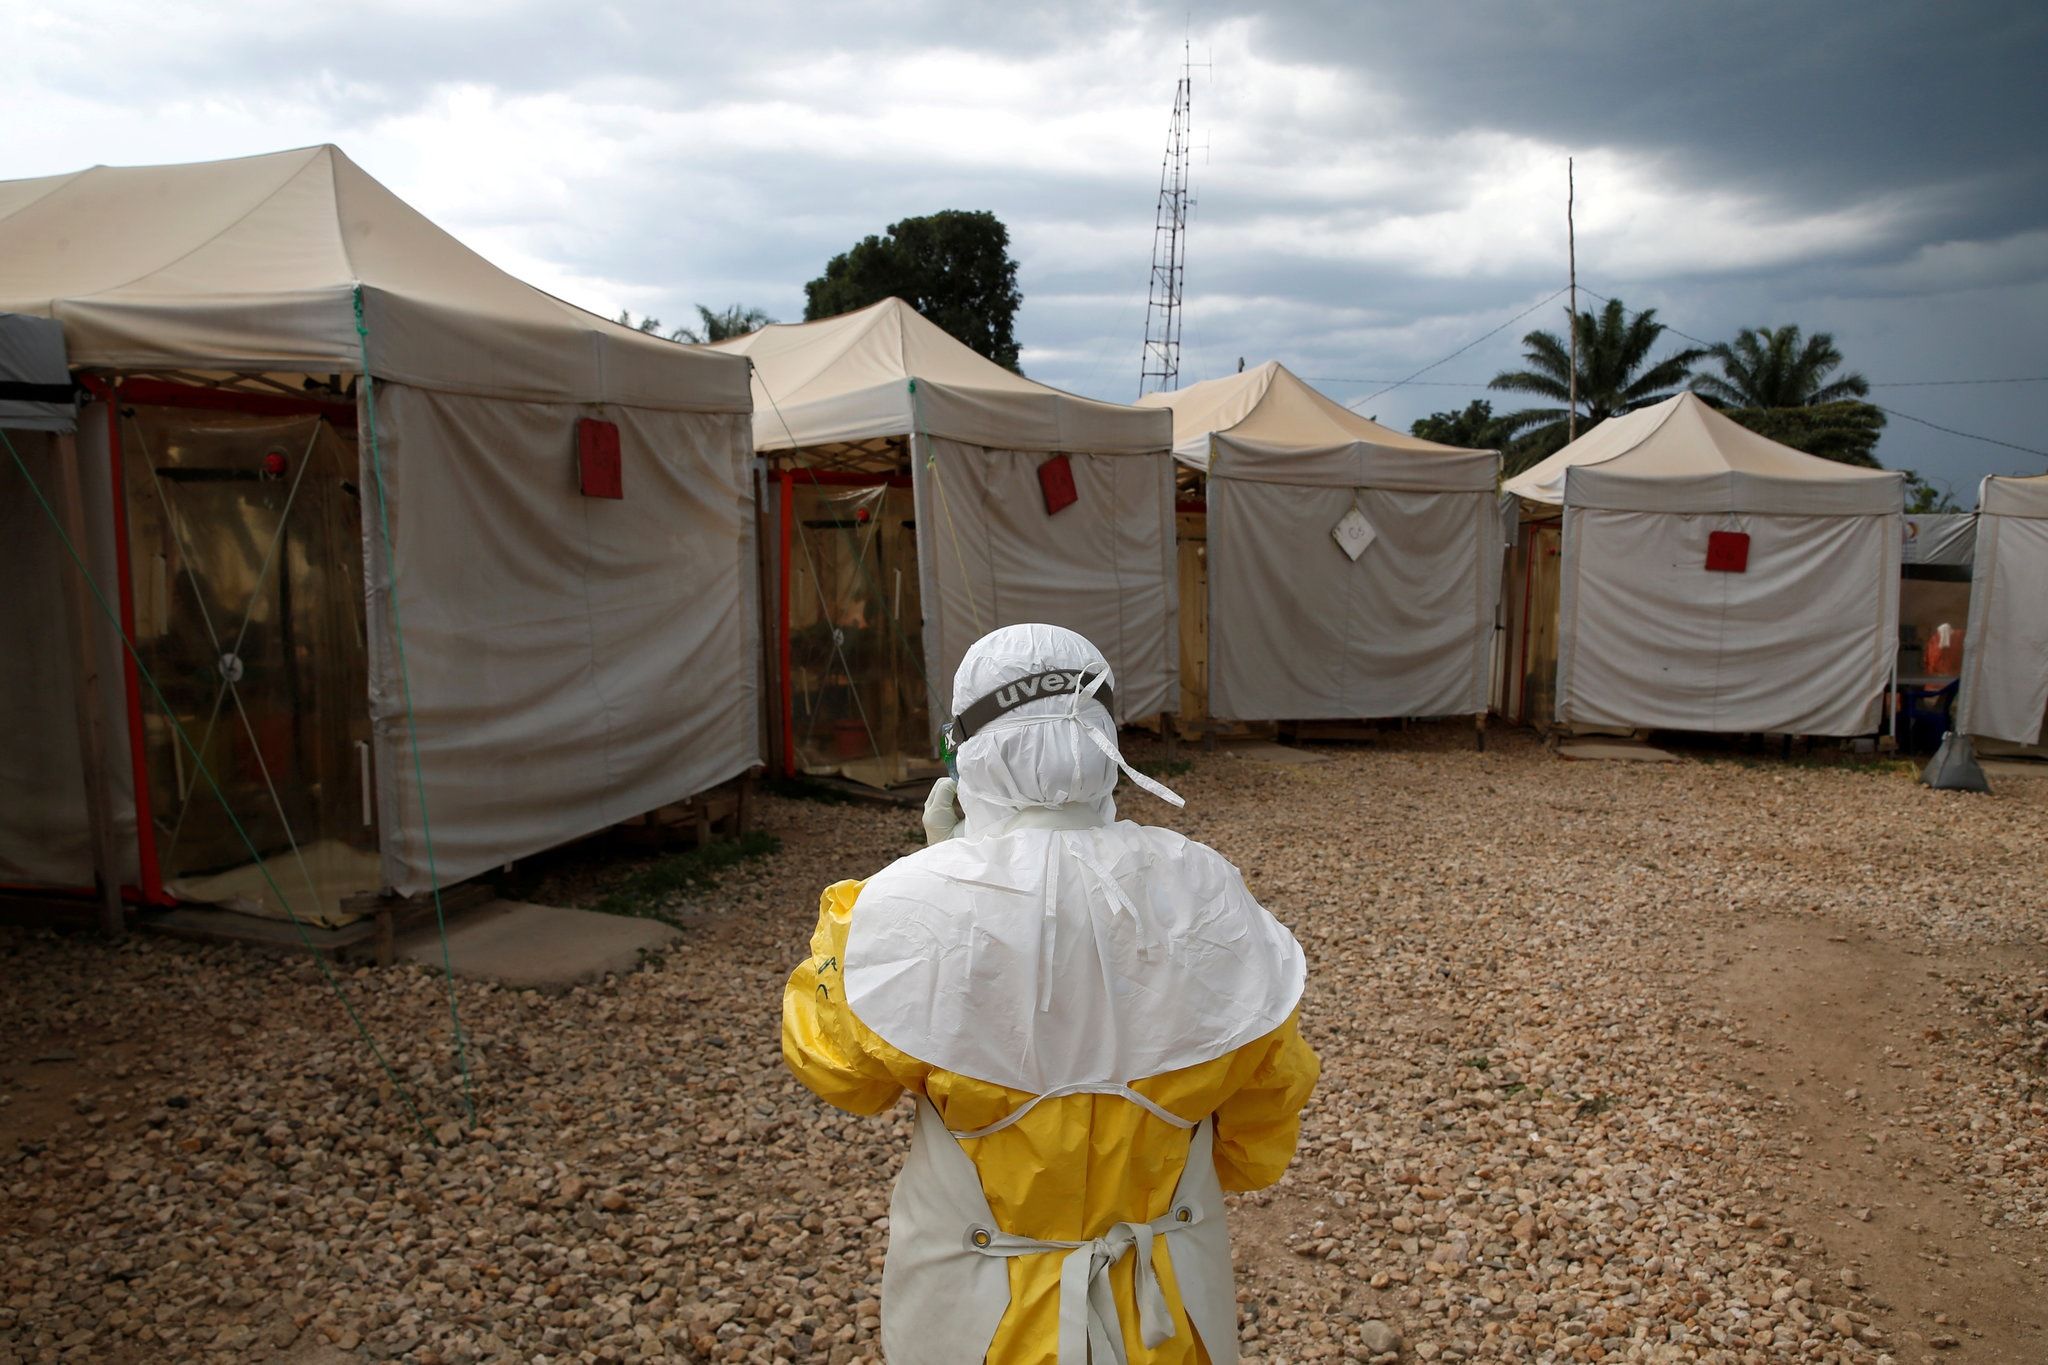 A health worker wearing Ebola protection gear at a Biosecure Emergency Care Unit treatment center in Beni, Democratic Republic of Congo. Credit Baz Ratner/Reuters